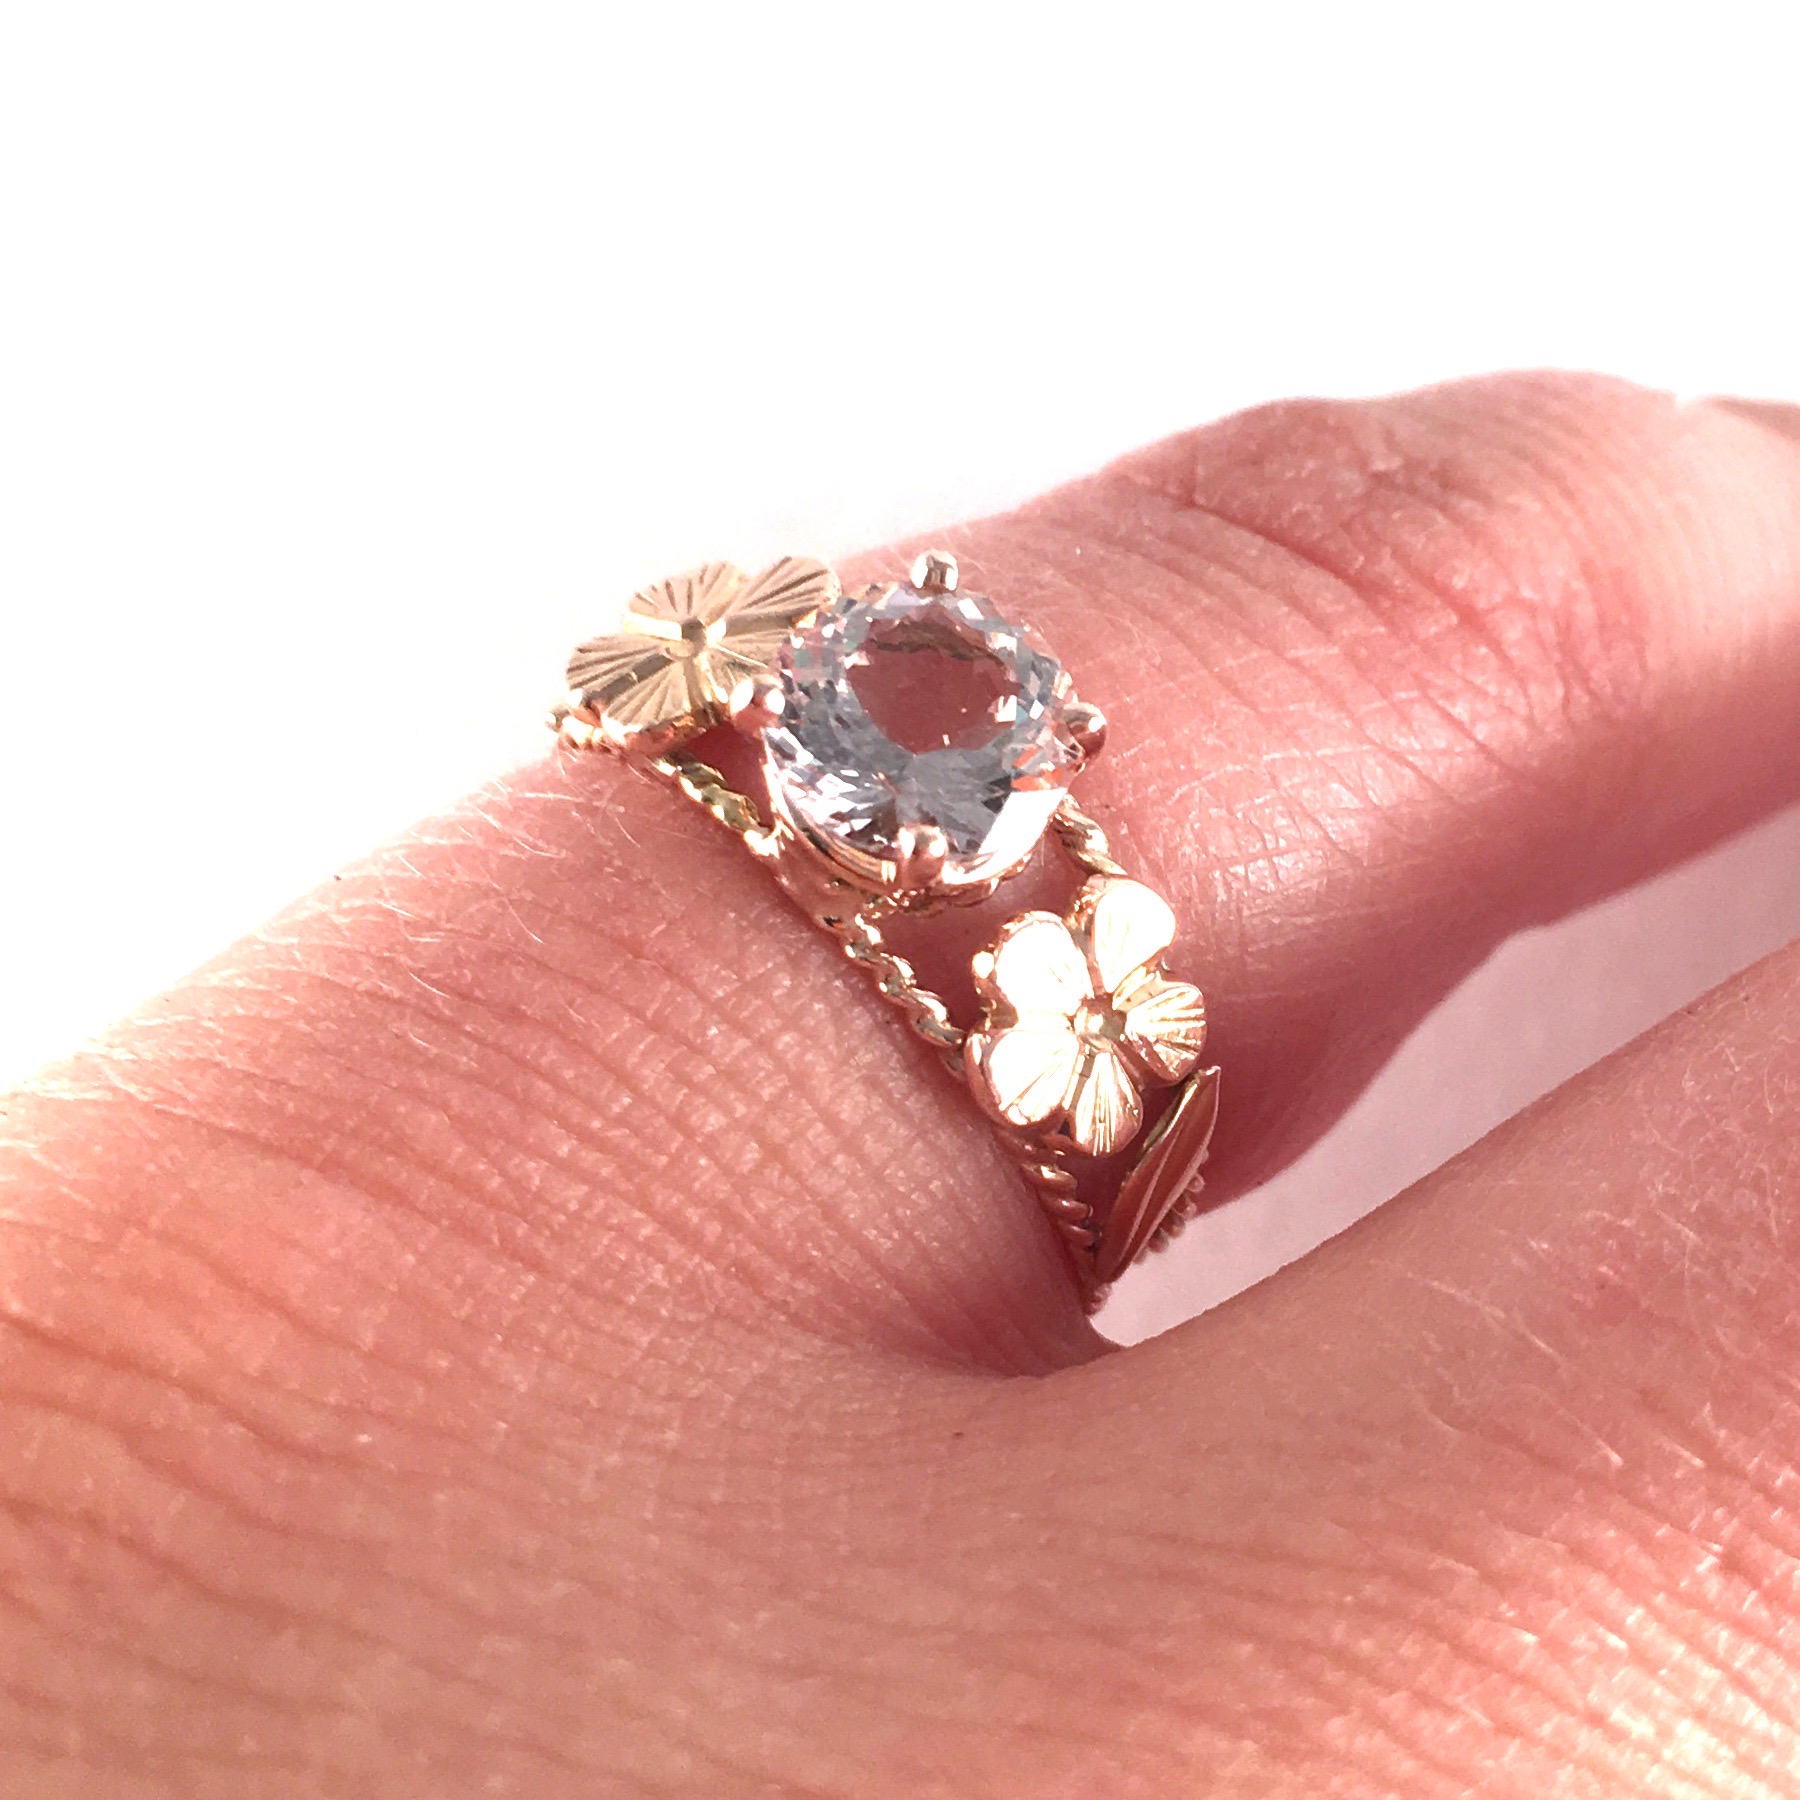 """Thank you Nina! This was the perfect ring for me. You did a beautiful job, and Adam said you saved the day by getting it done in a rush. It means the world."" - Sidney P."